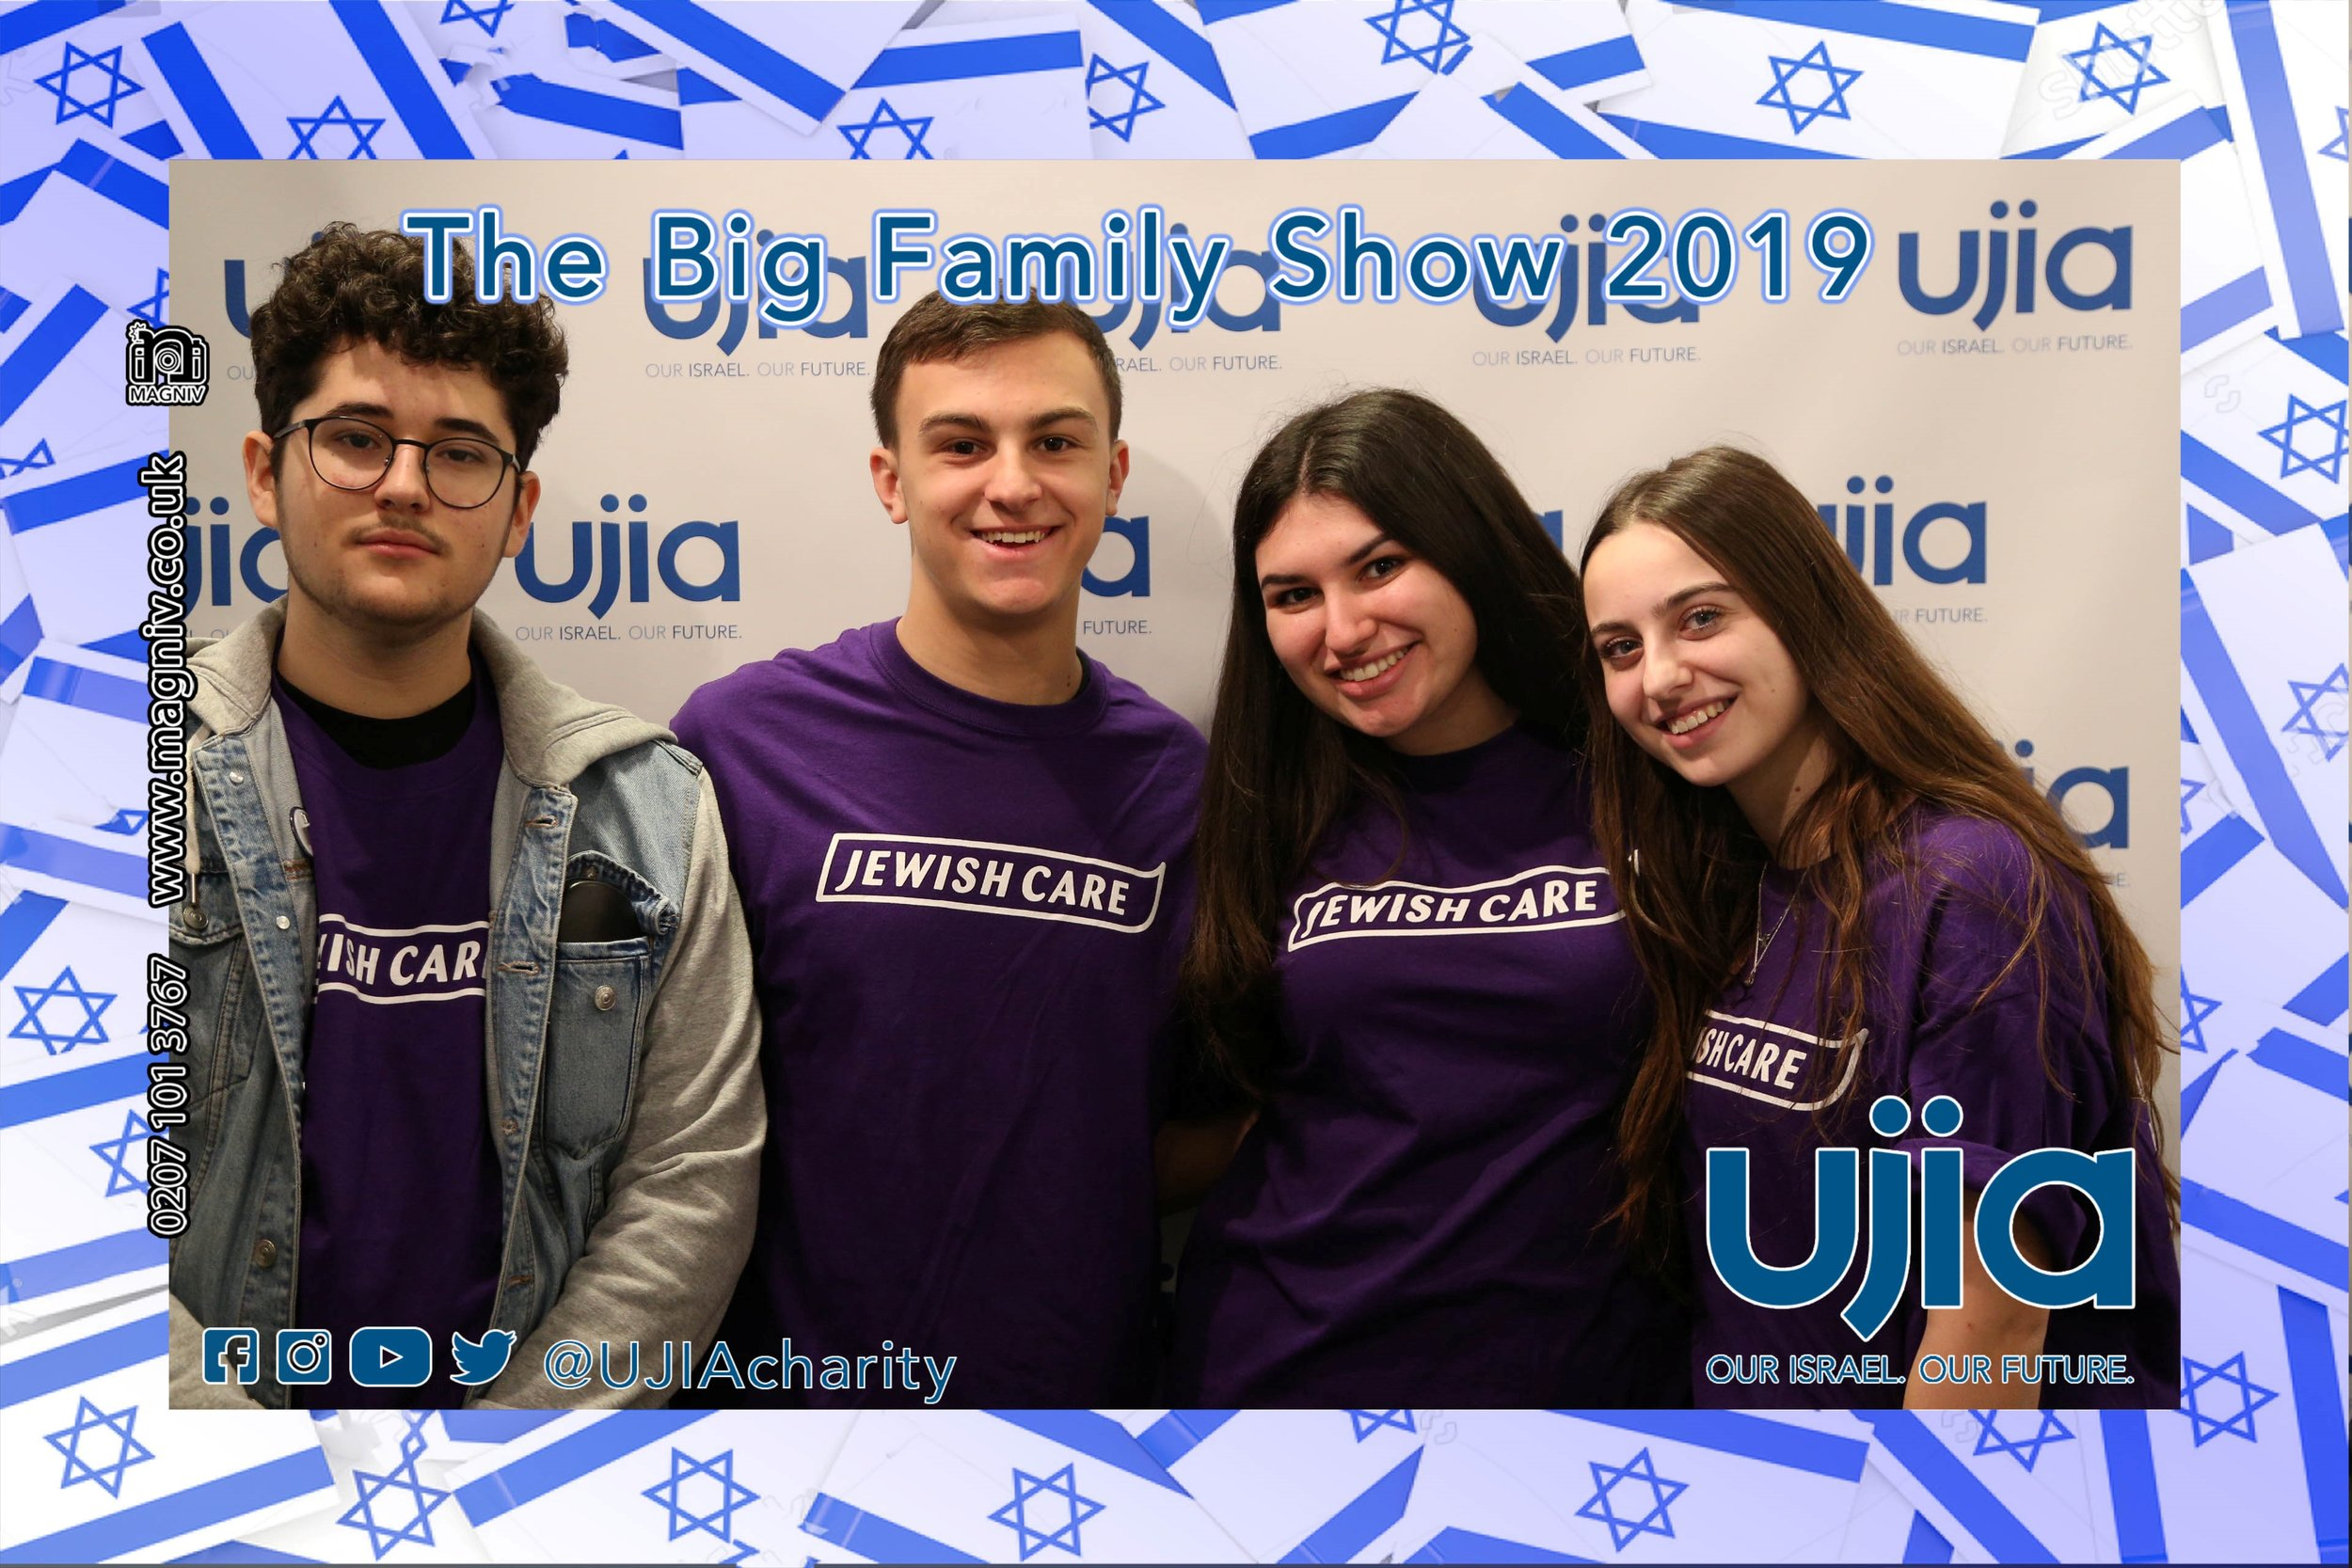 The guys from over on the Jewish Care stand popped round for a quick photo-magnet!